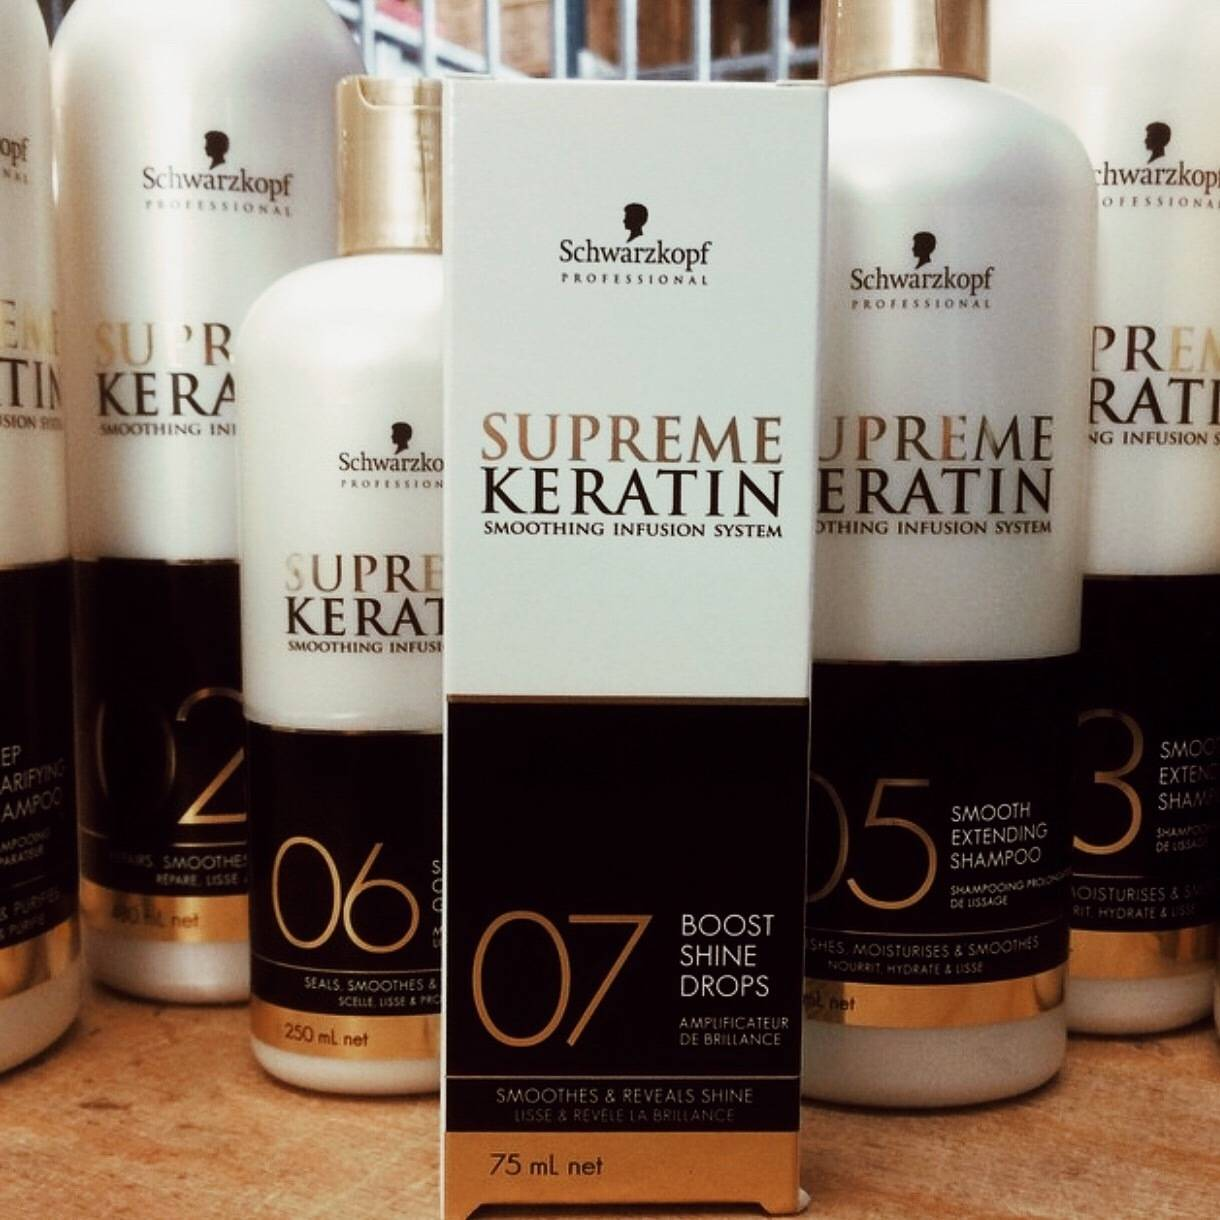 Supreme Keratin Smoothing Treatment